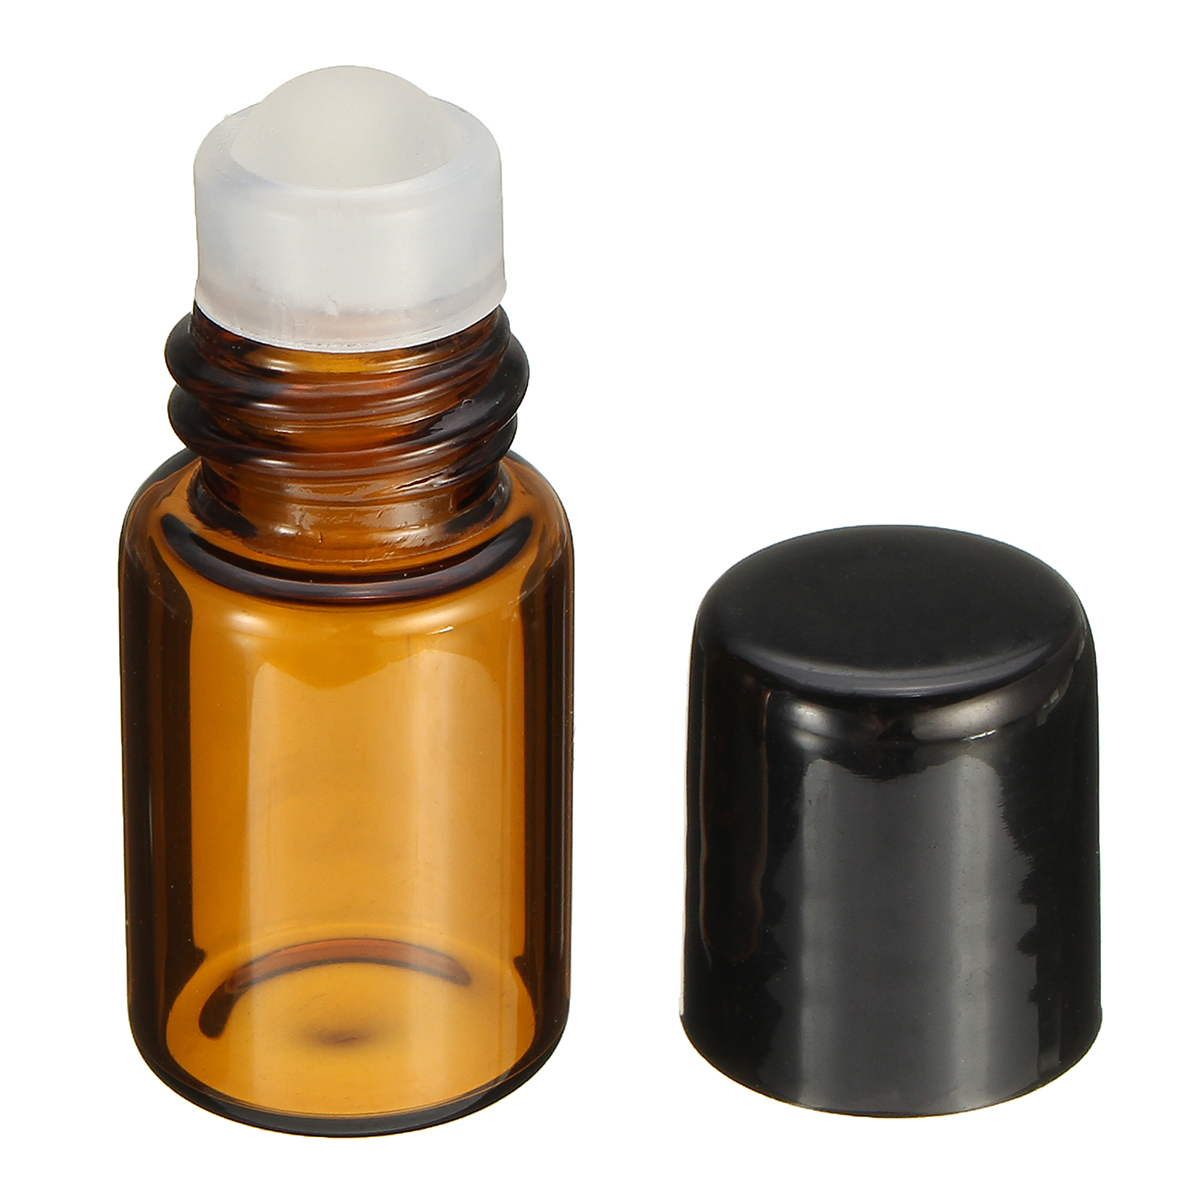 2mL Empty Amber Glass Roll on Bottle Container Refillab